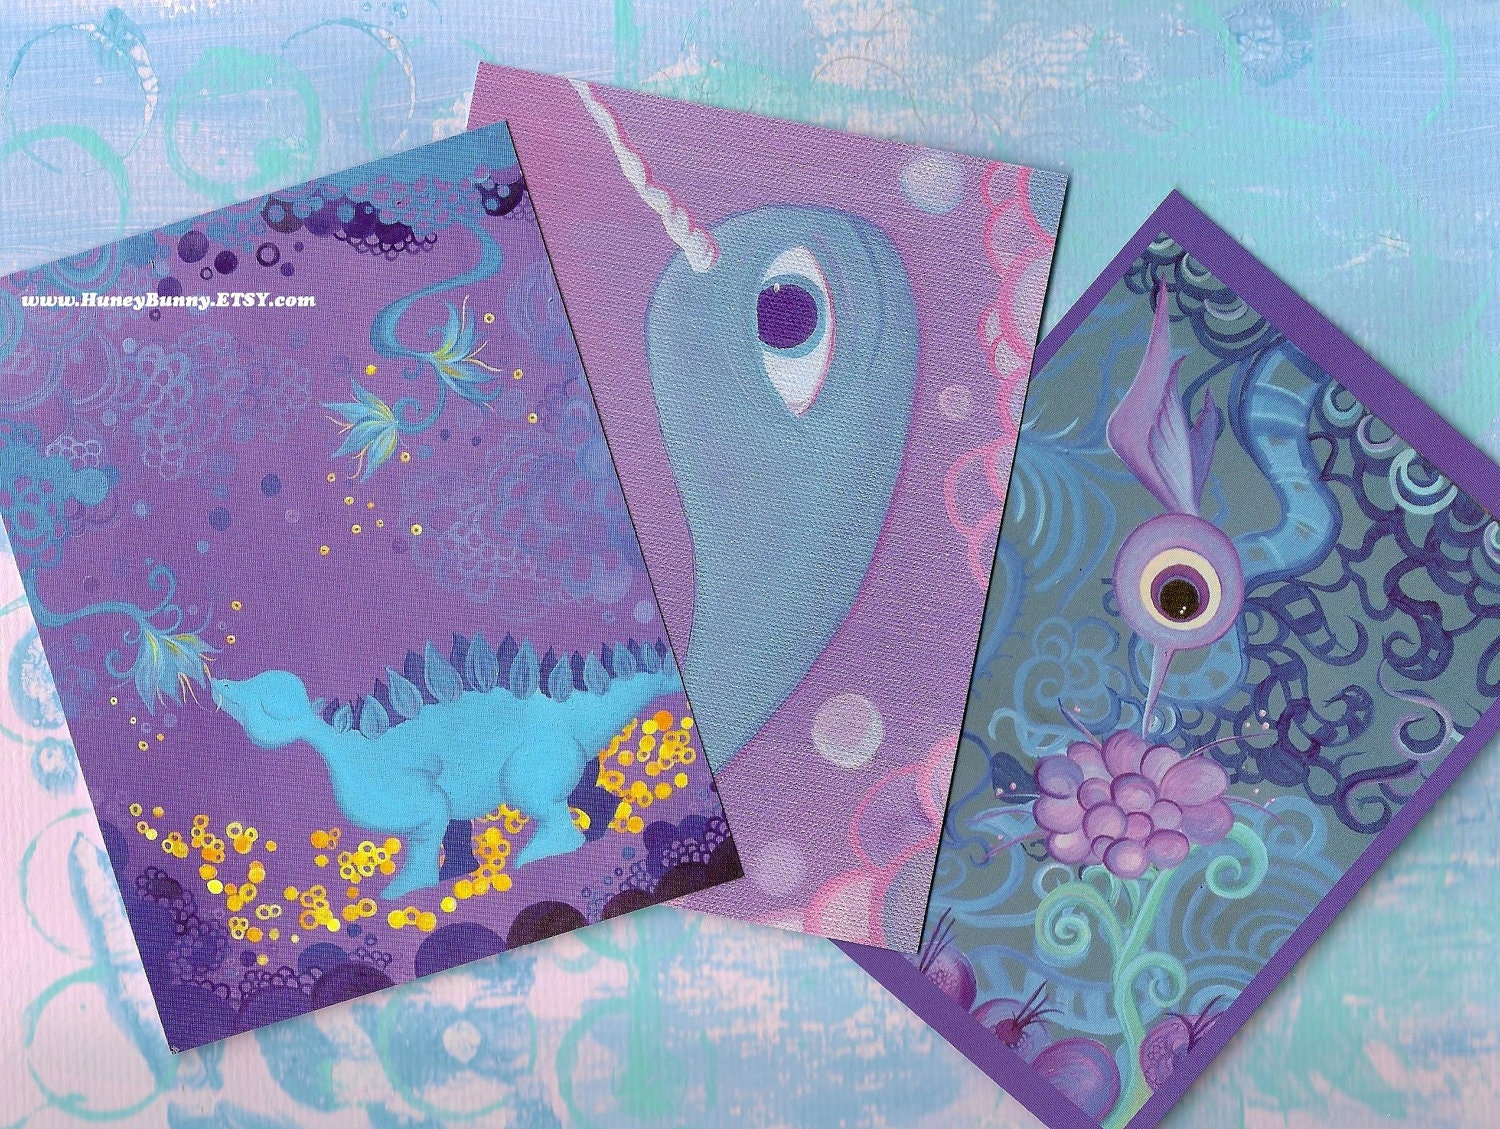 Purple Postcards - set of 3. Original Art Featuring a Narwhal, a Dinosaur, and a Hummingbird.